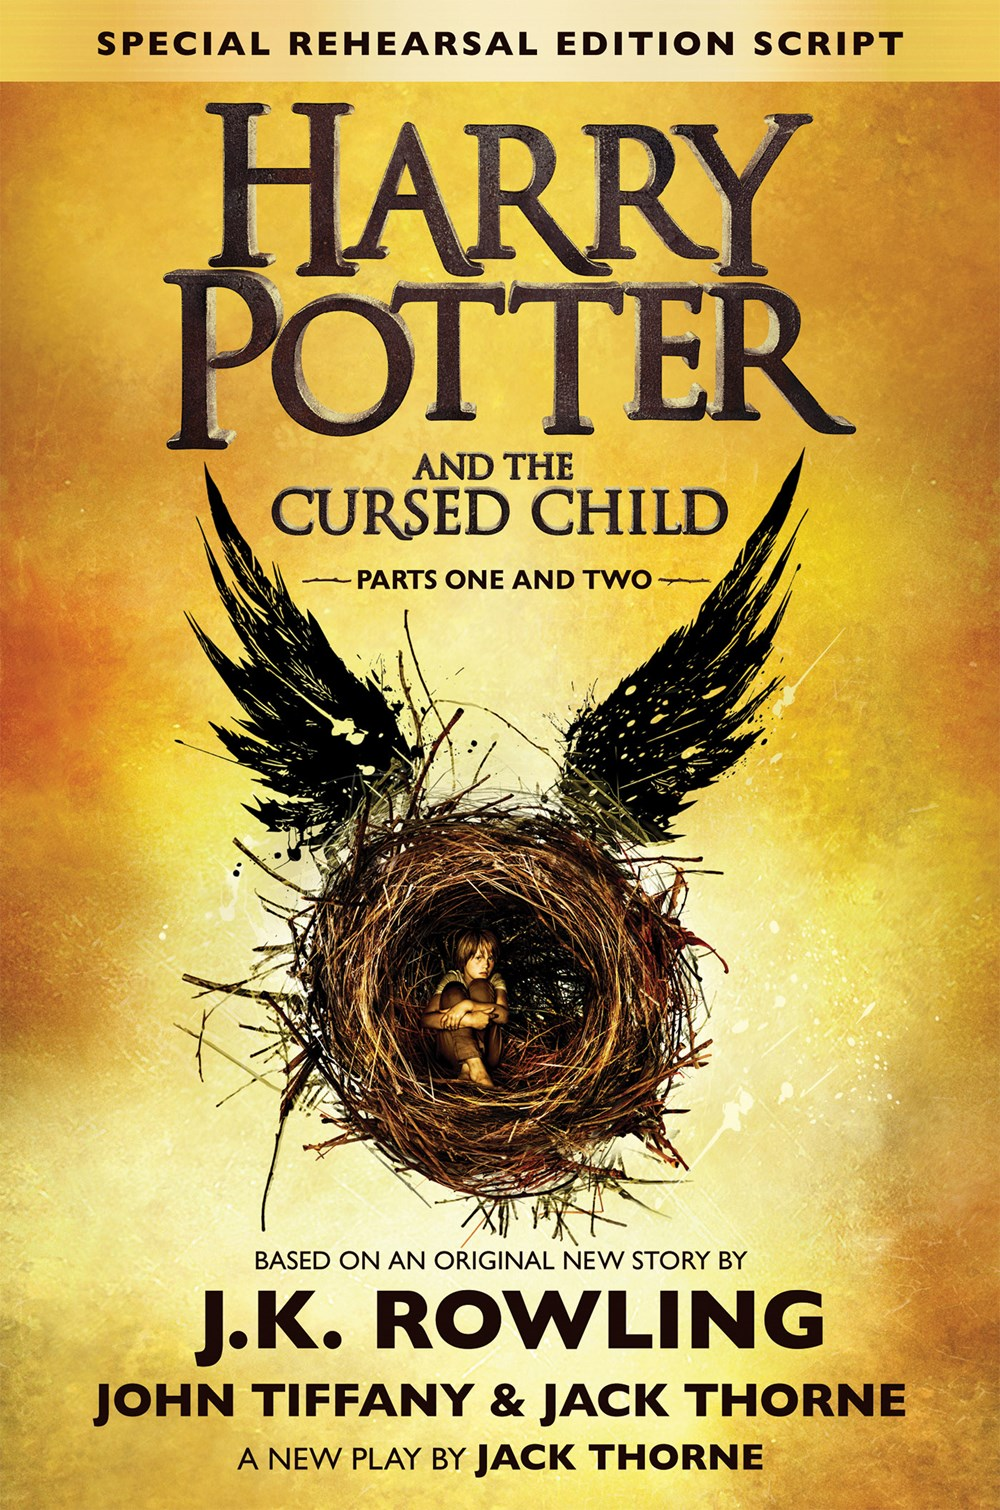 Harry Potter and the Cursed Child, Parts 1 & 2 by J.K. Rowling, Jack Thorne, John Tiffany